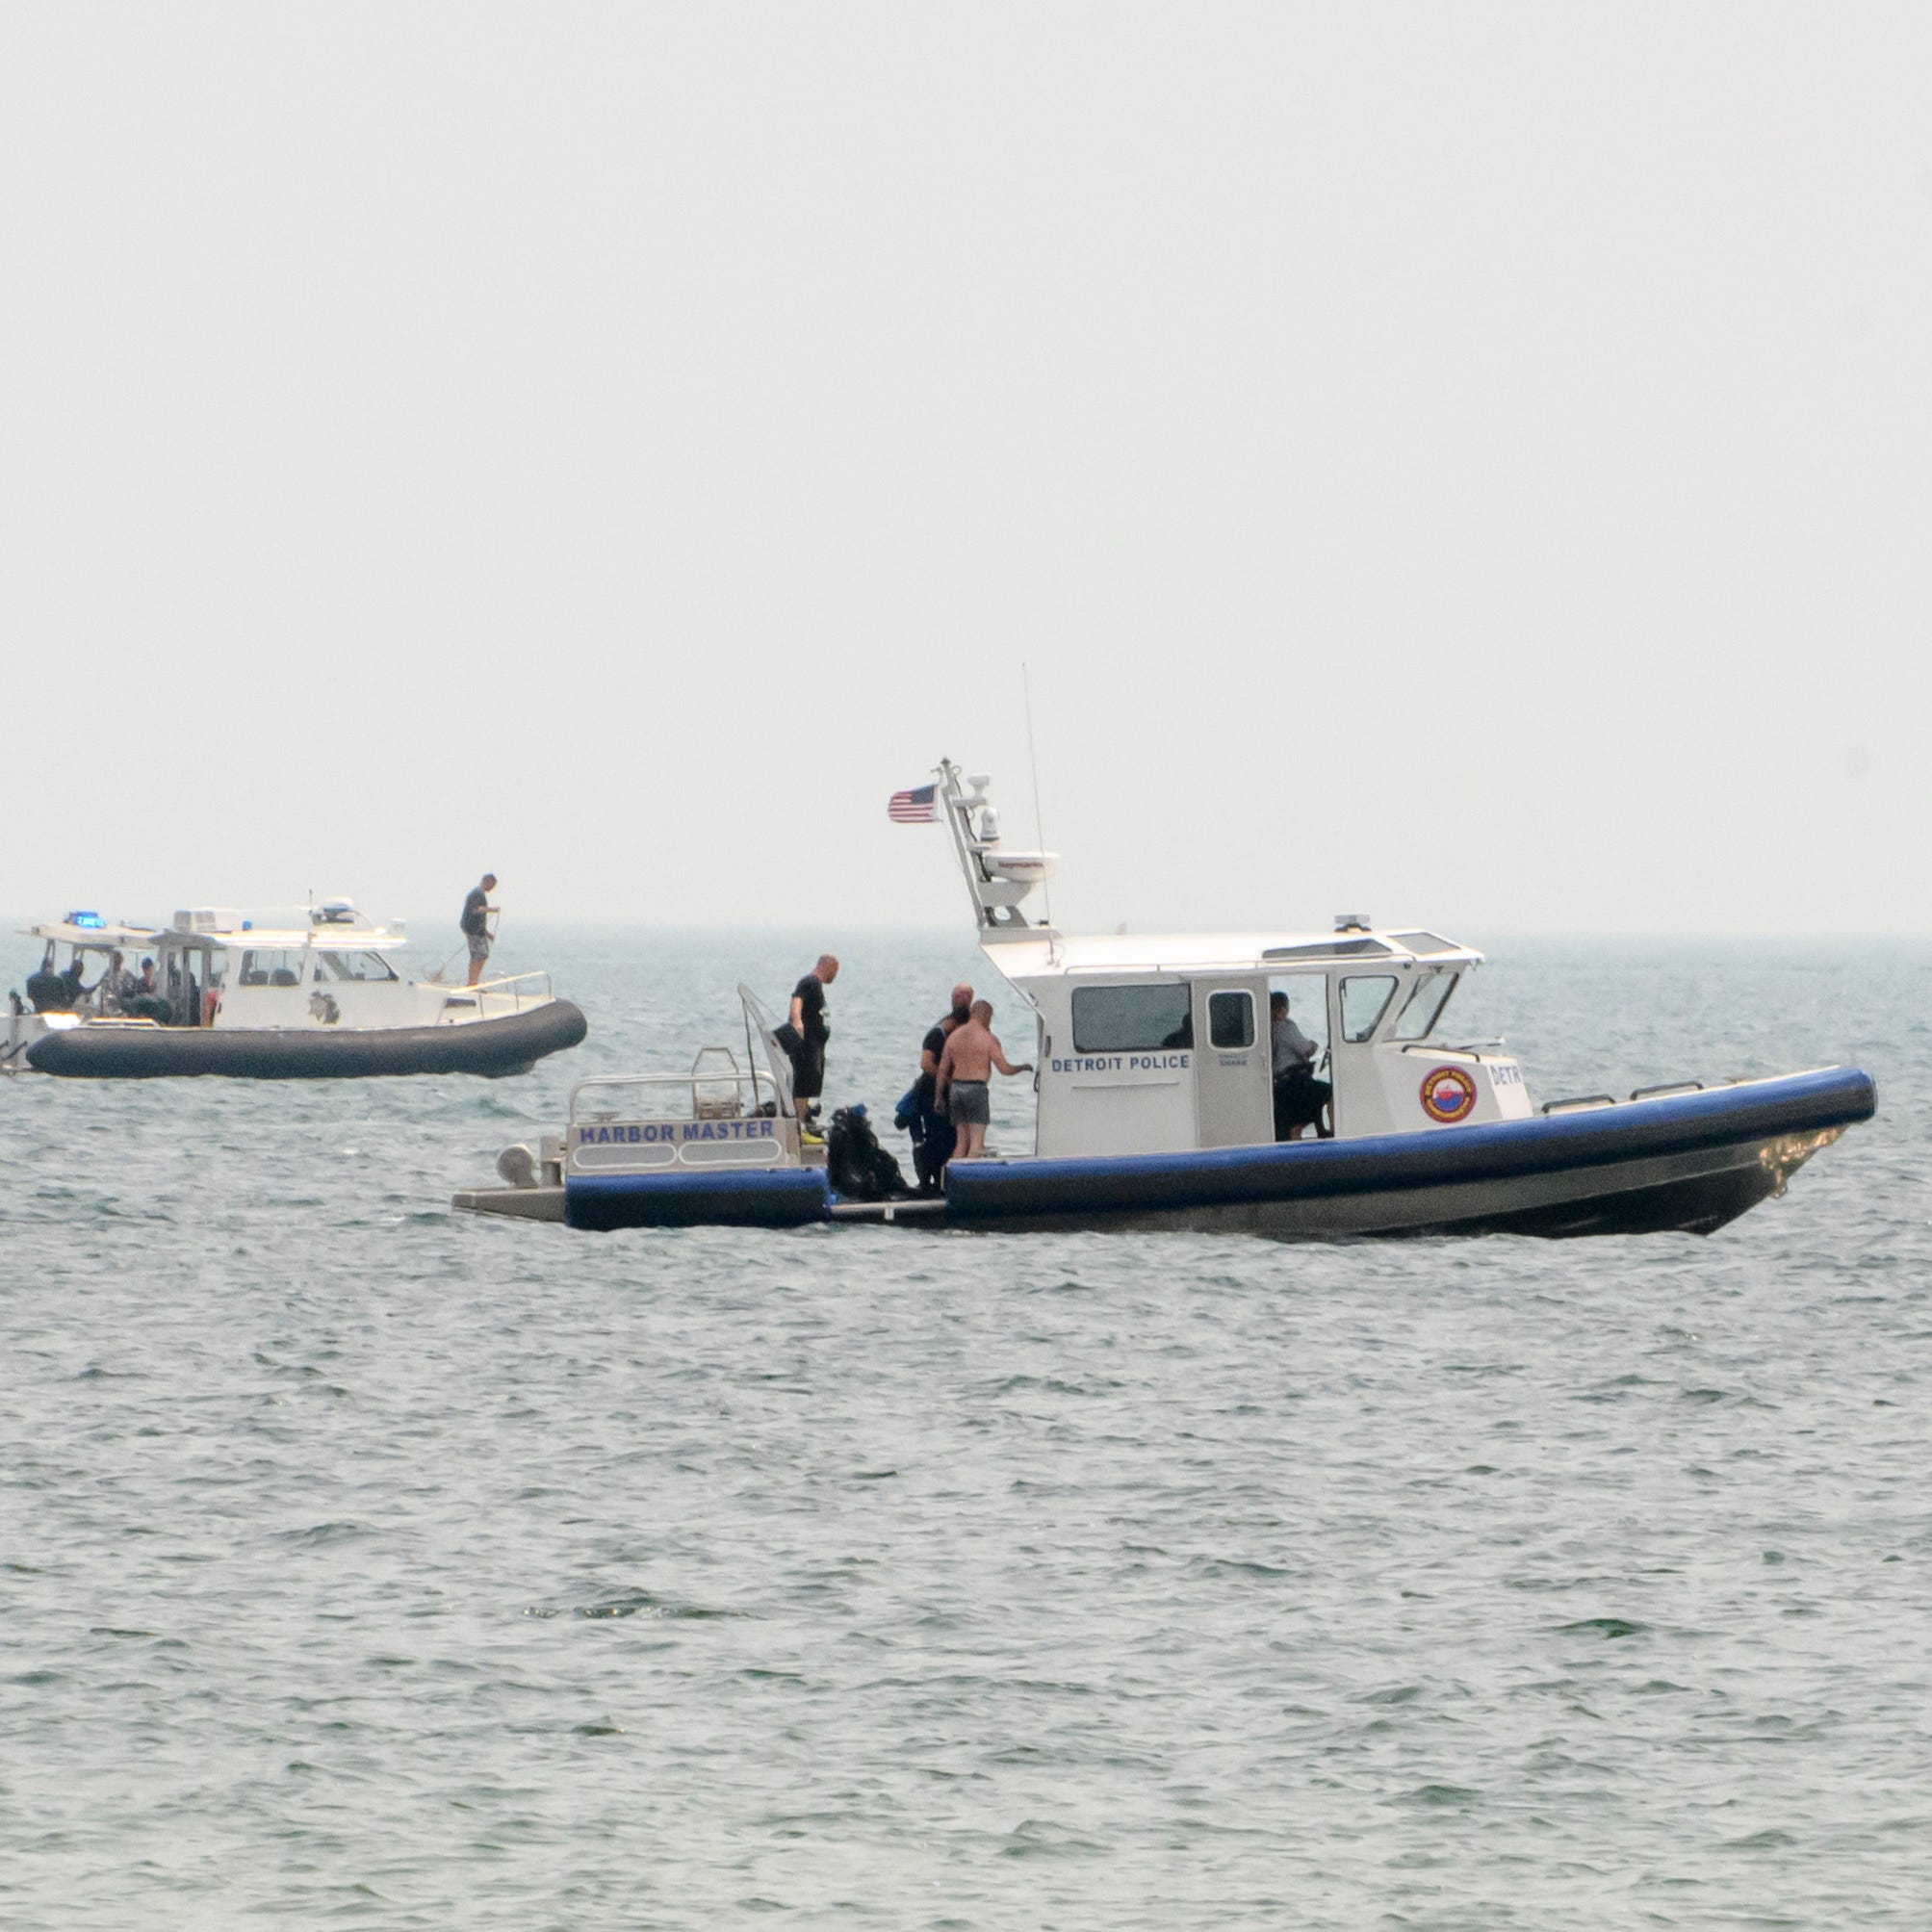 Man's body recovered after boat drifts away on Lake St. Clair